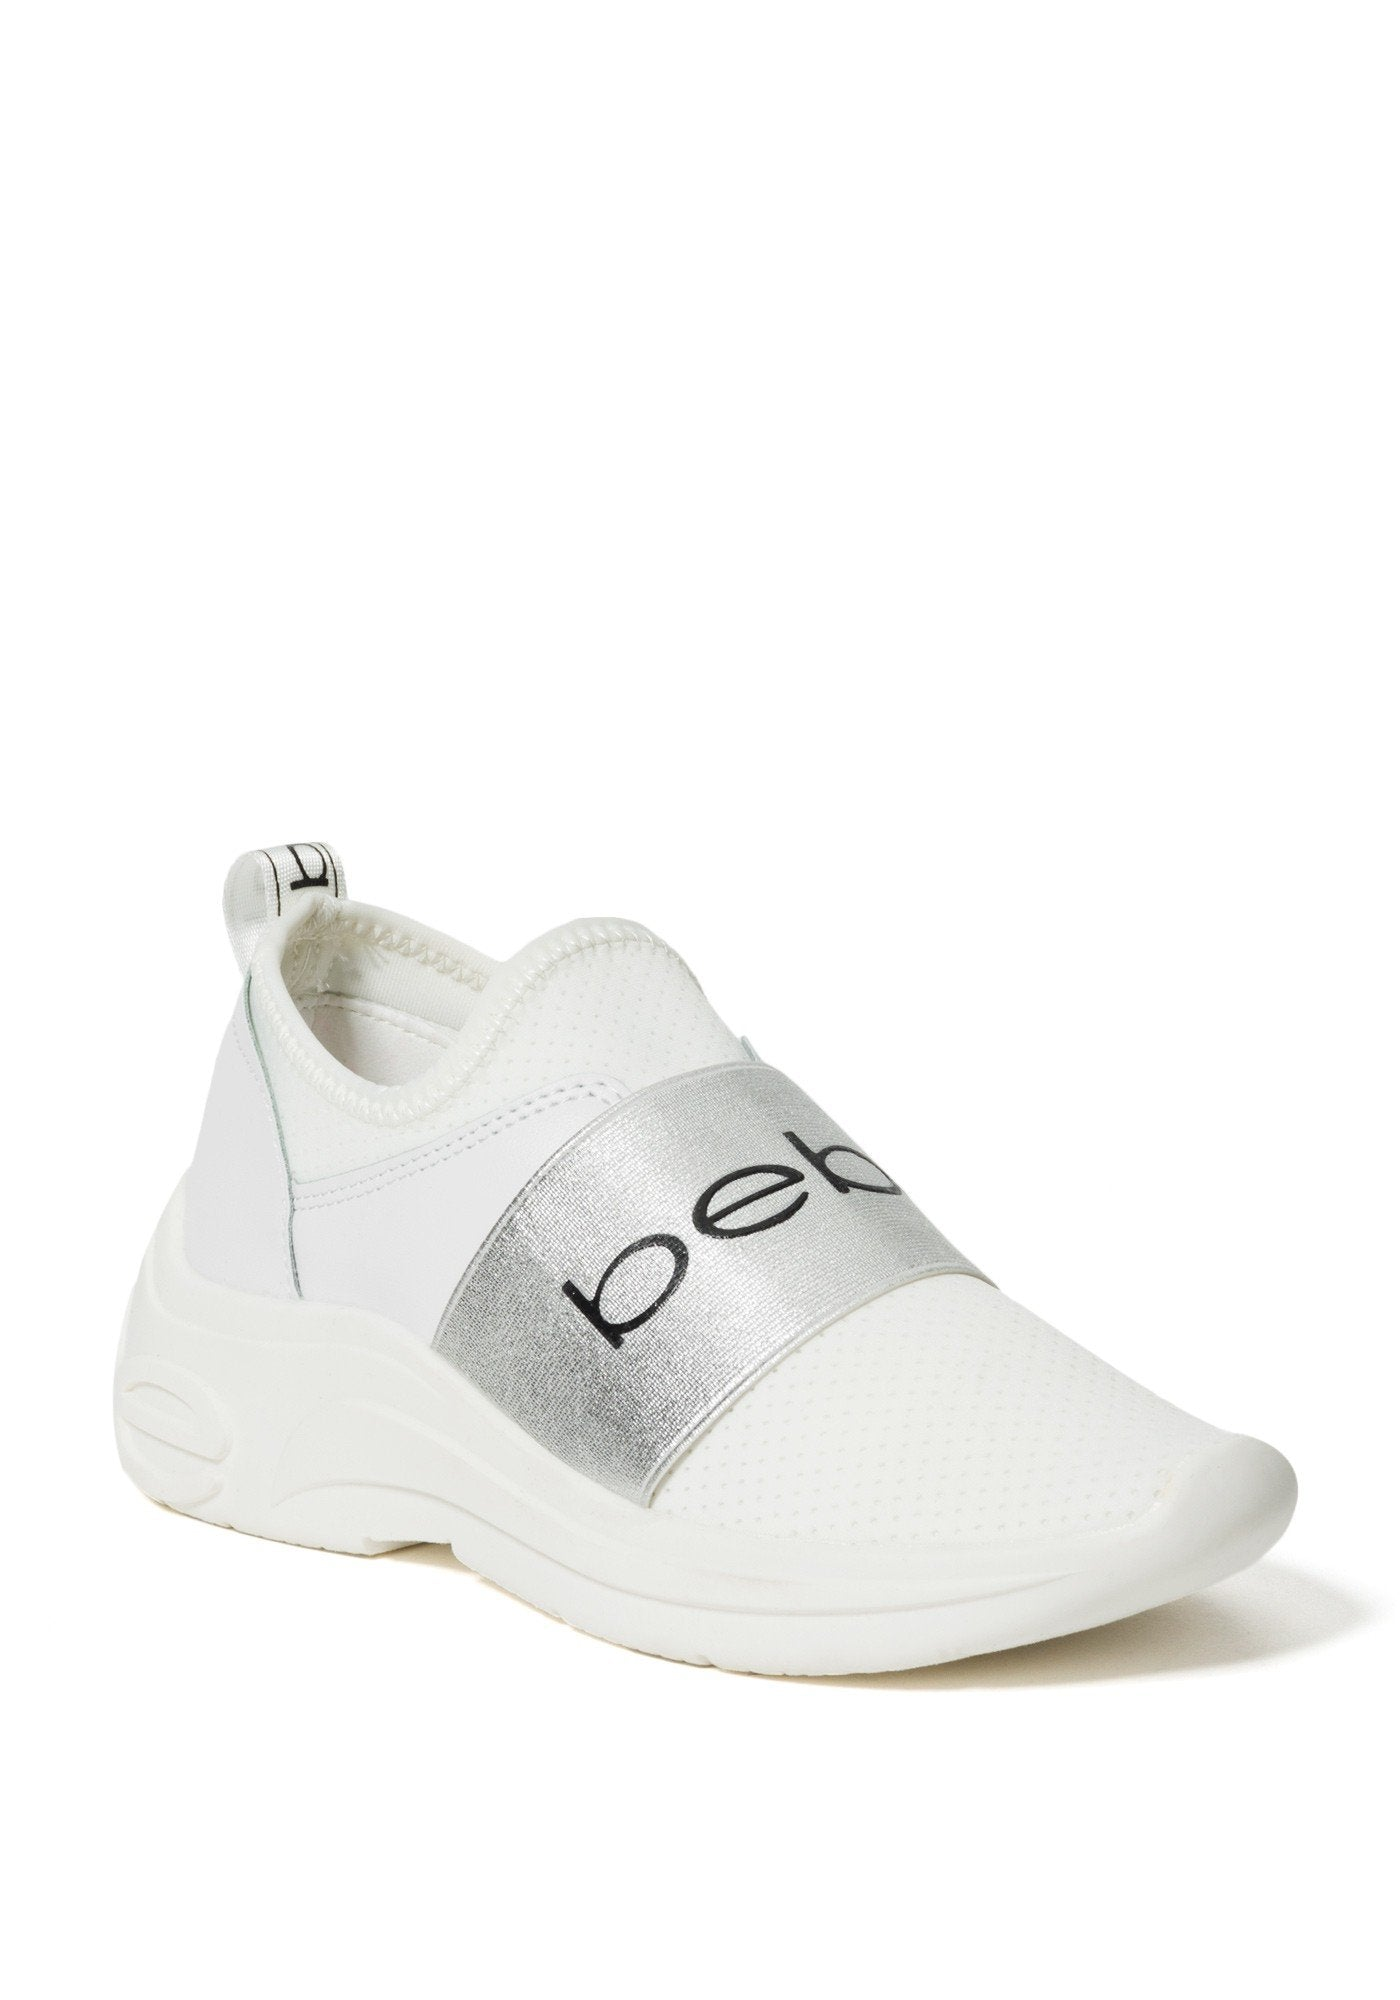 Bebe Women's Ladd Logo Slip On Sneakers, Size 6 in White Synthetic